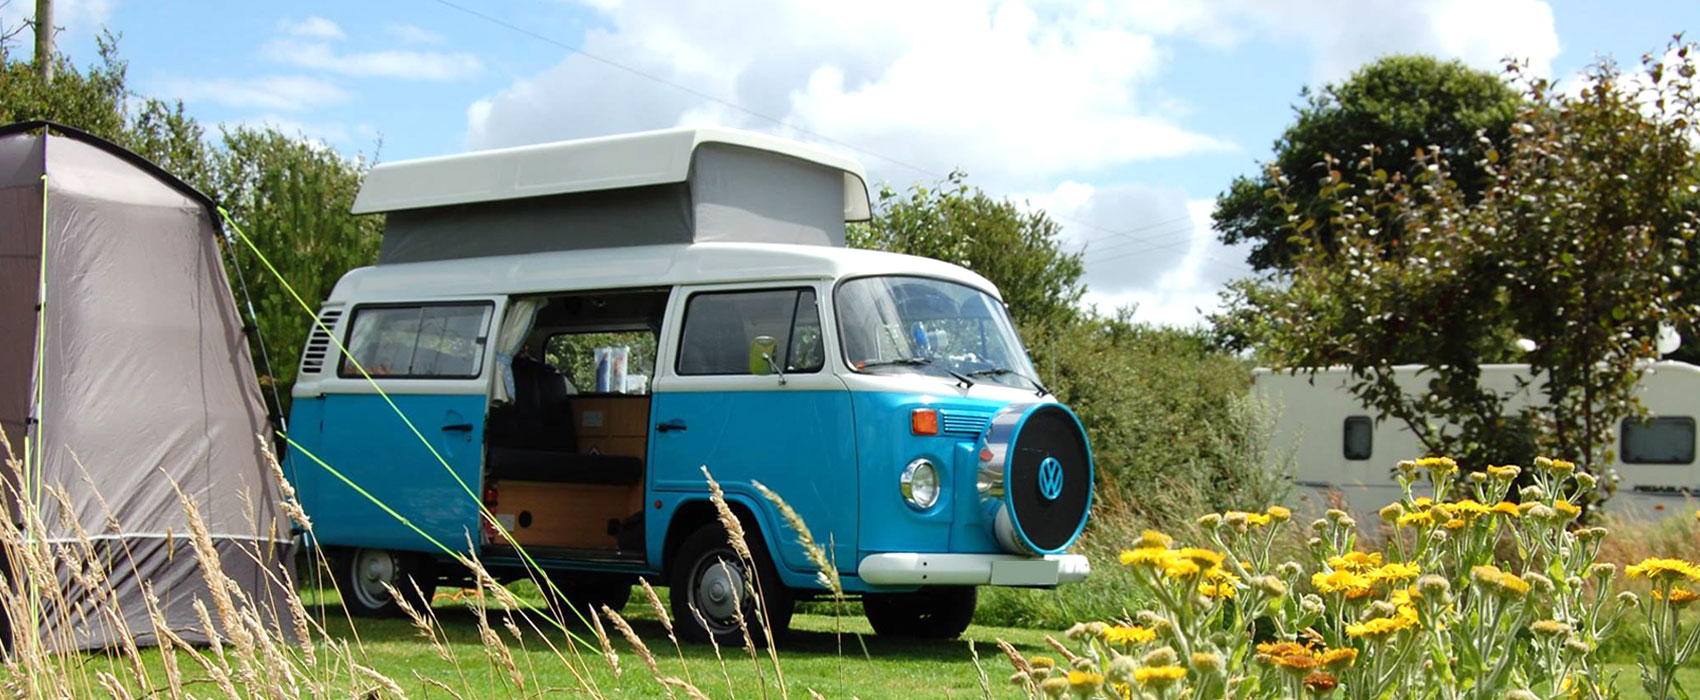 Book Your VW Campervan Cornwall Experience